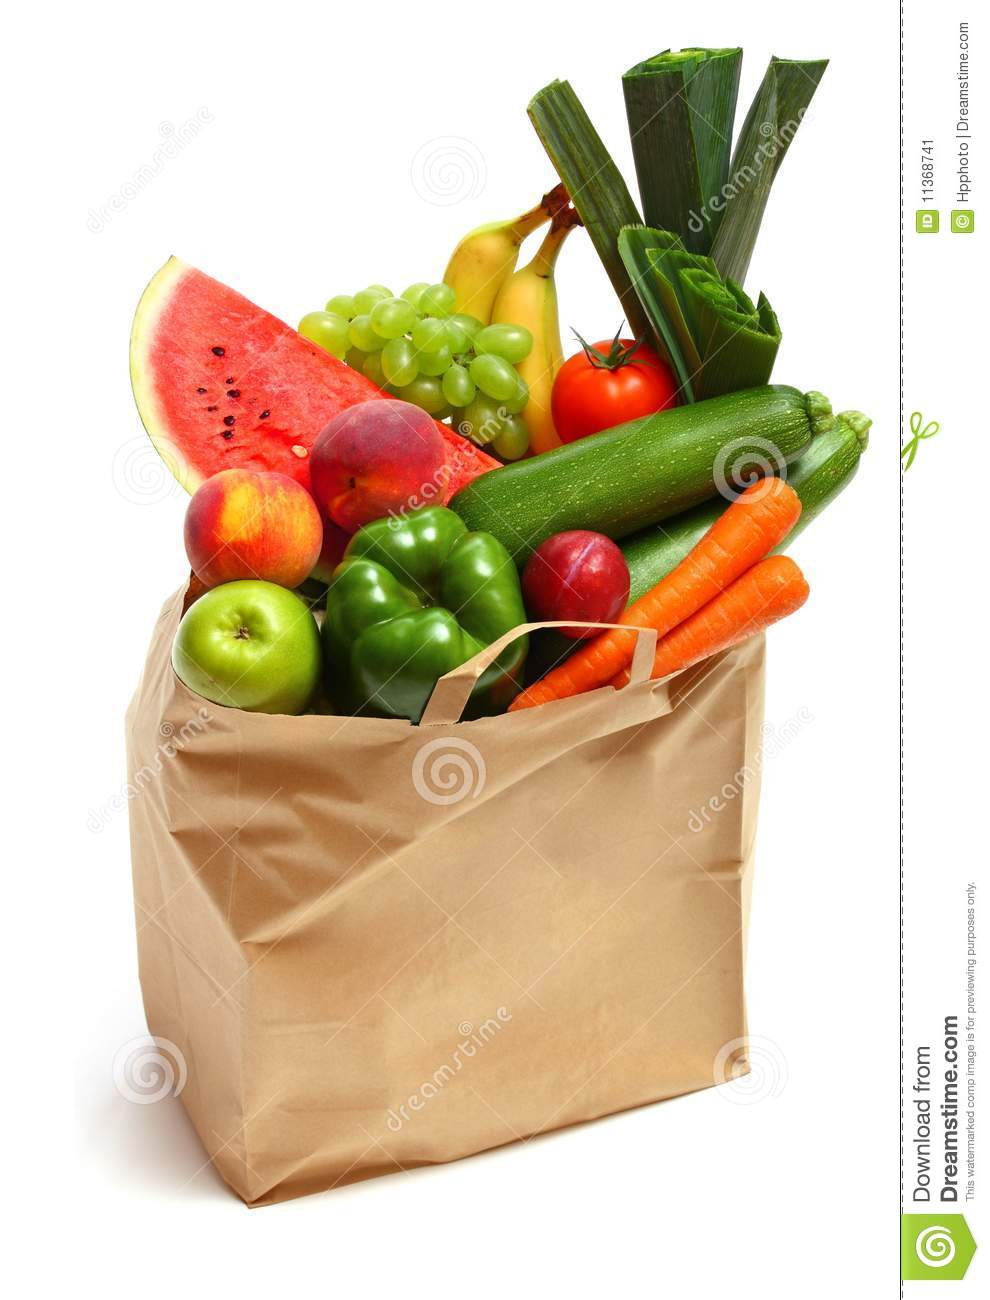 bag full of healthy fruits and vegetables stock image image of